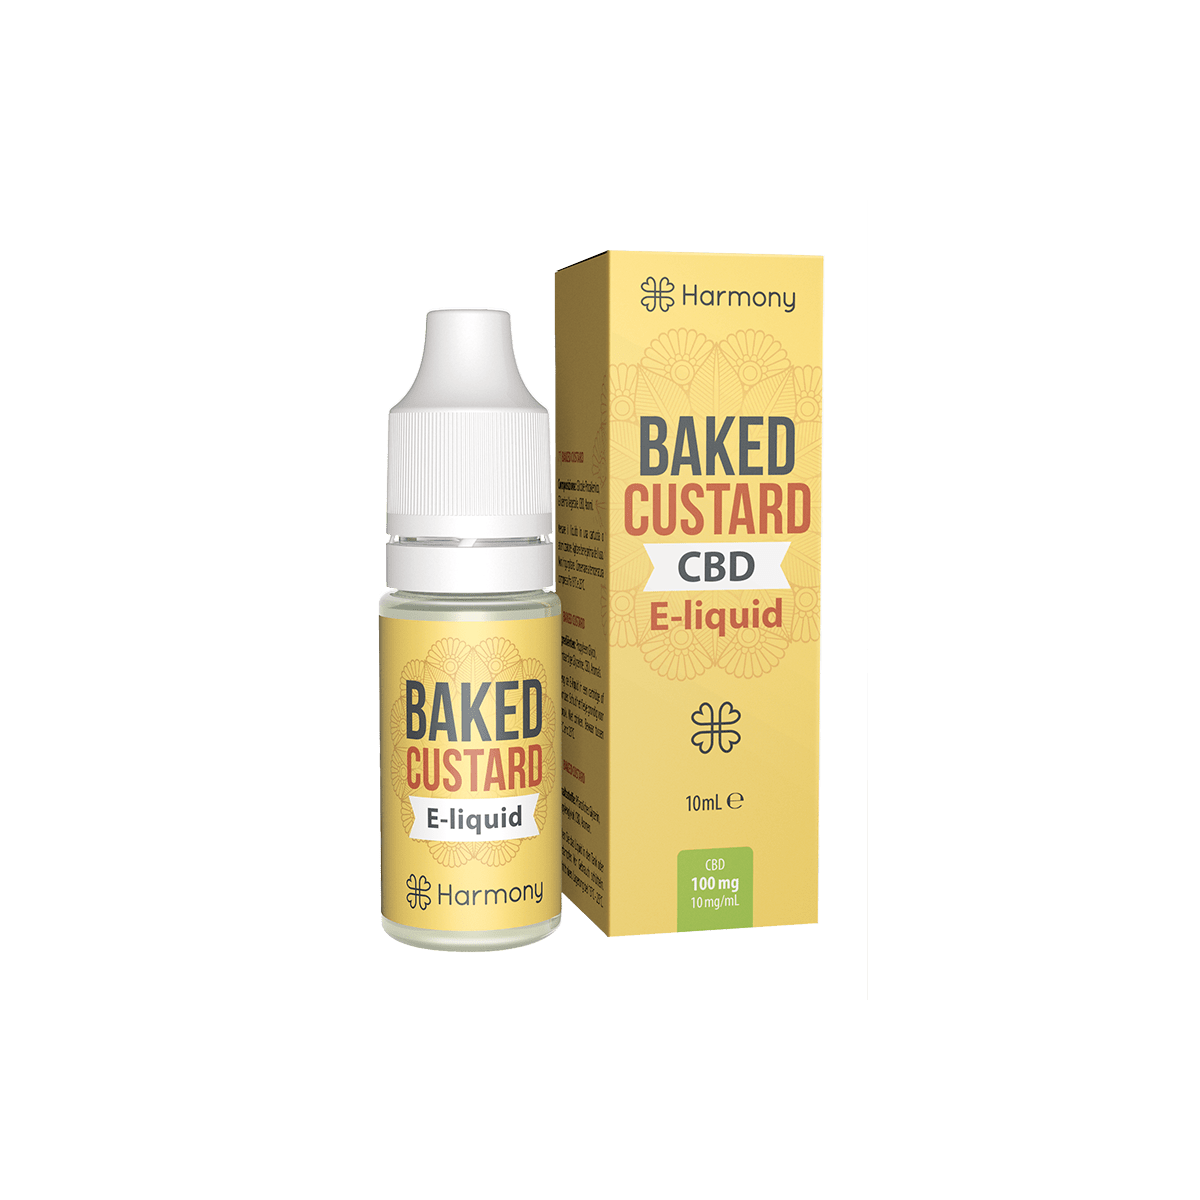 CBD Liquid | HARMONY - Baked Custard | Menge 10 ml - 100 mg